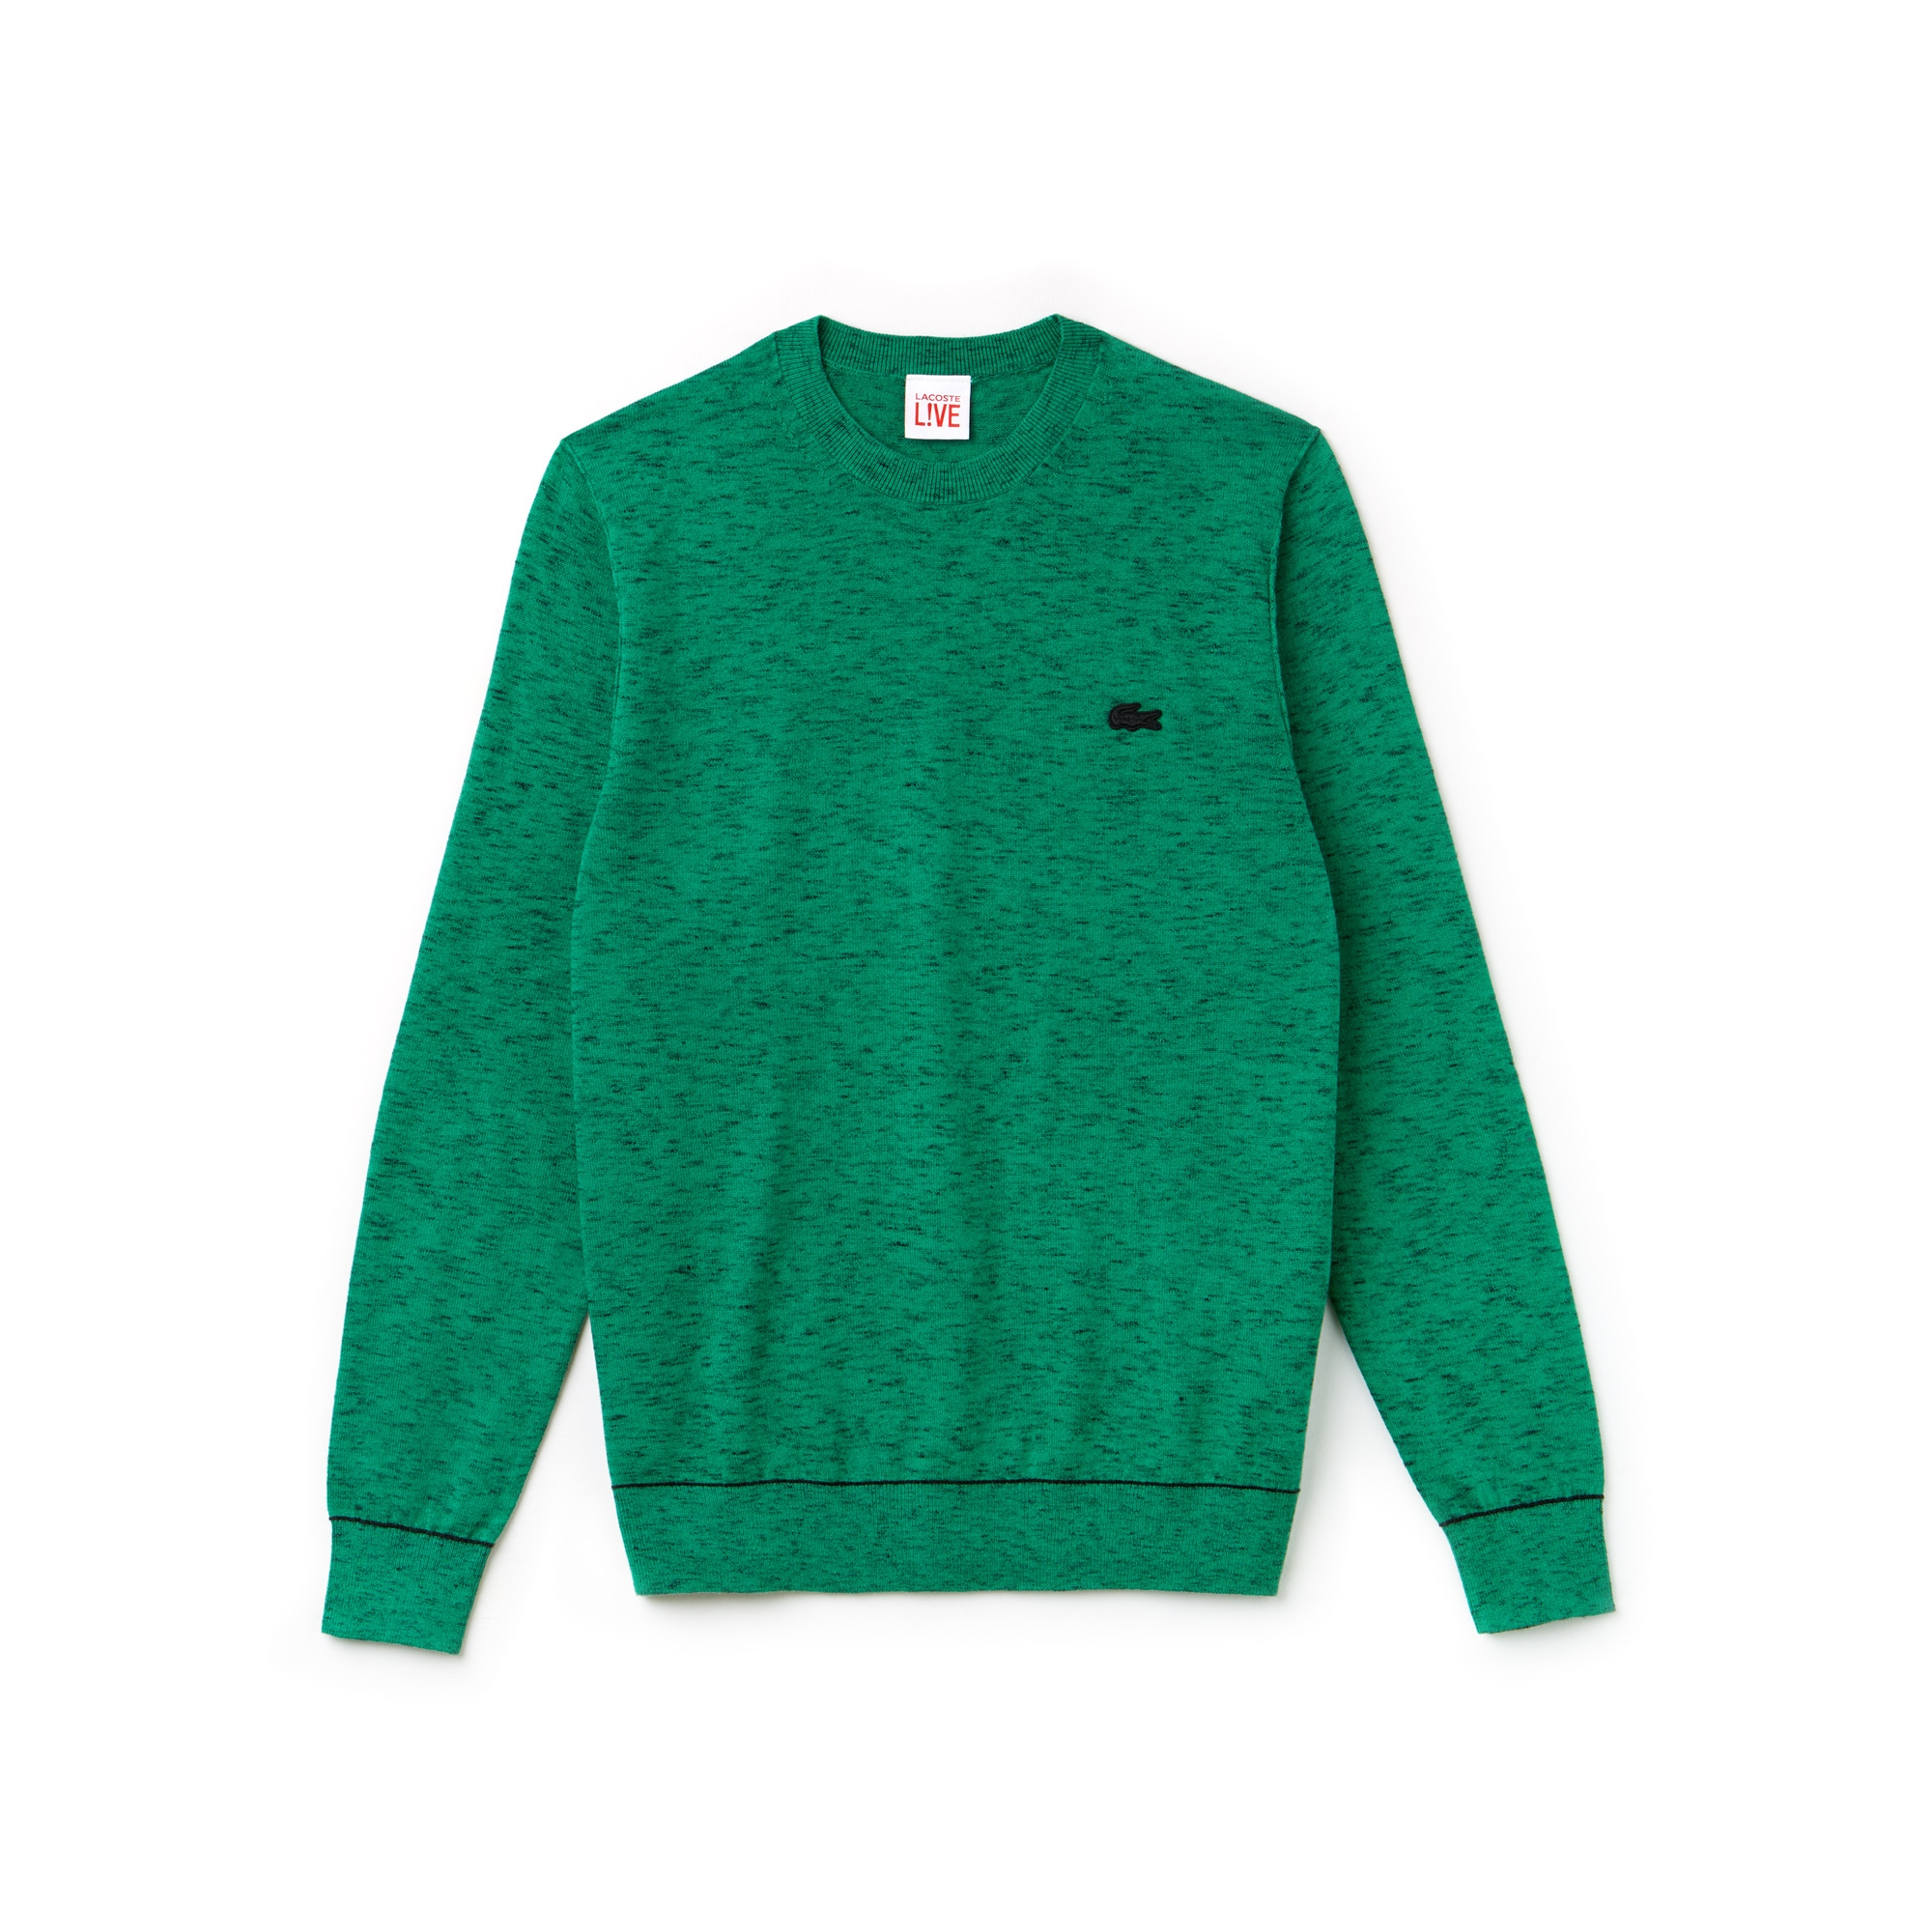 Neck Cashmere Crew Cotton Lacoste And Sweater Live Jersey Men's iPkTZuOX